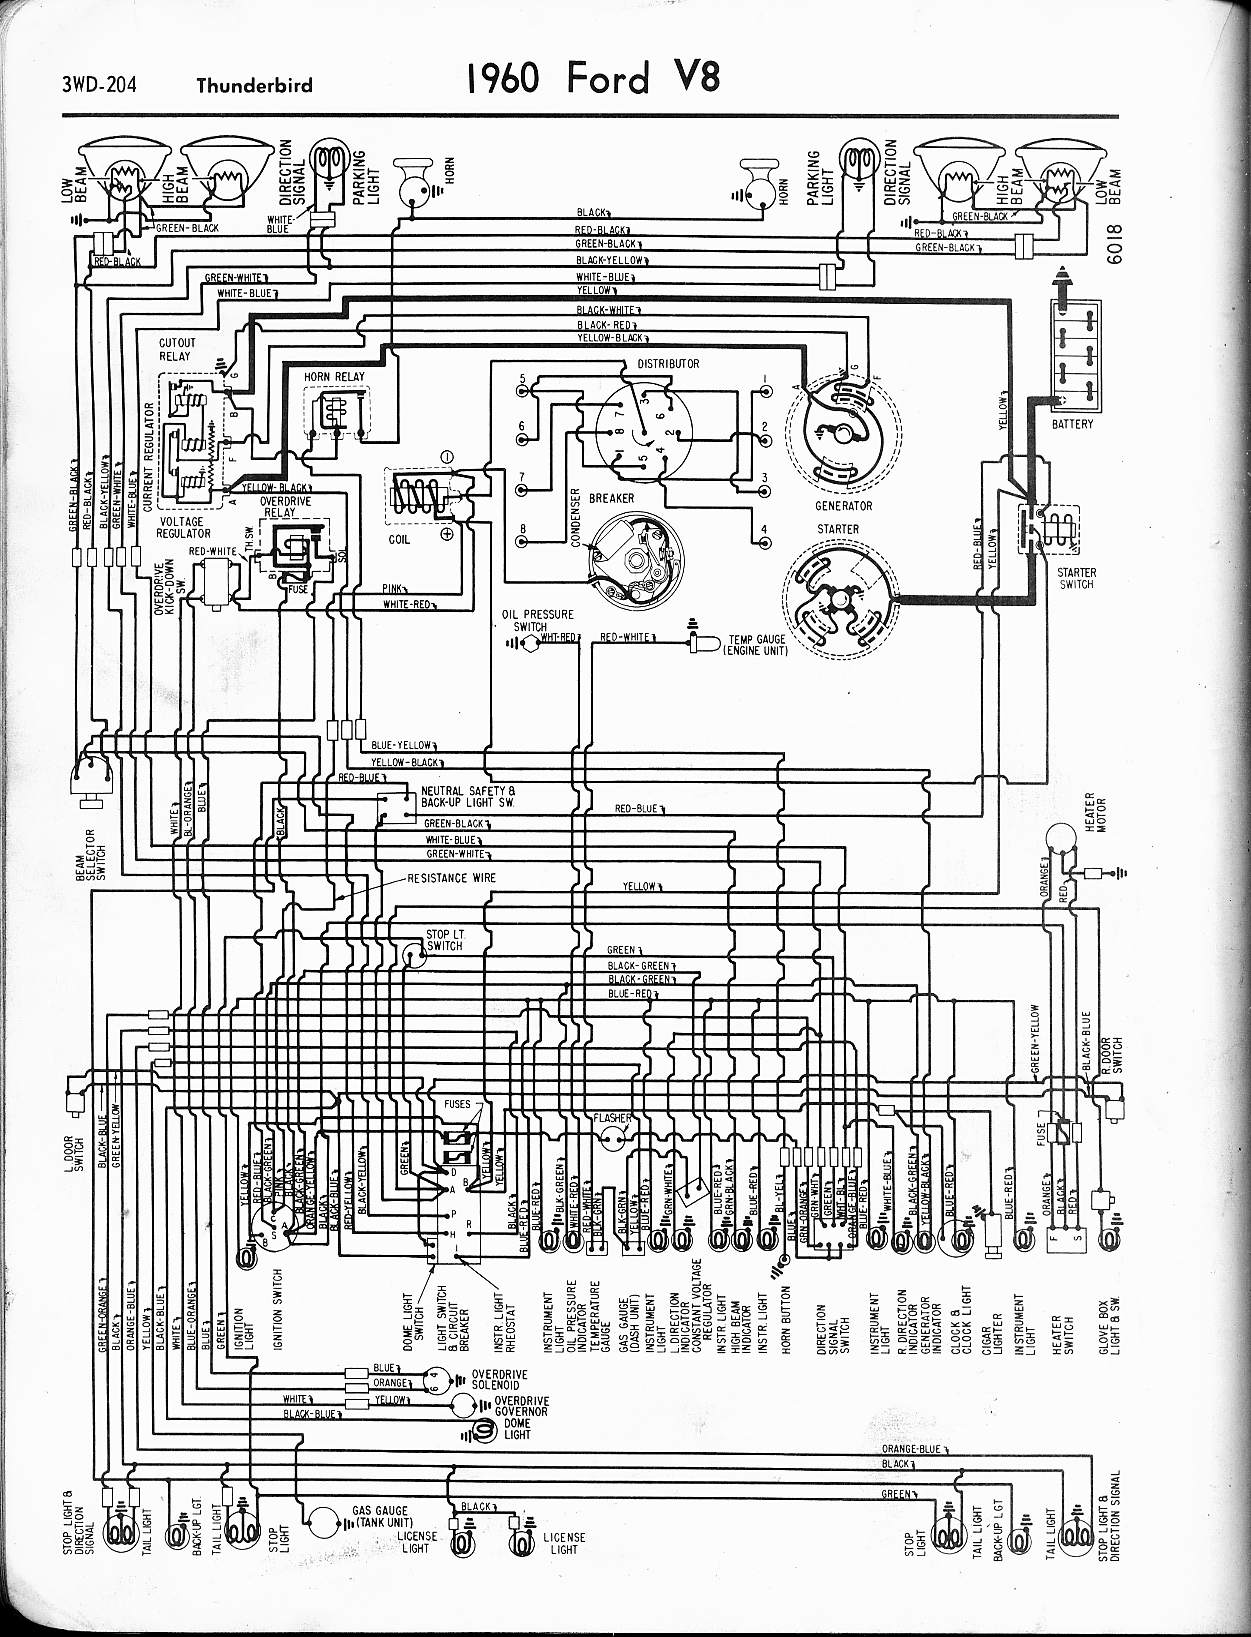 1970 F100 Wiring Diagram Books Of 2002 F350 Turn Signal Fairlane Just Data Rh Ag Skiphire Co Uk Ford